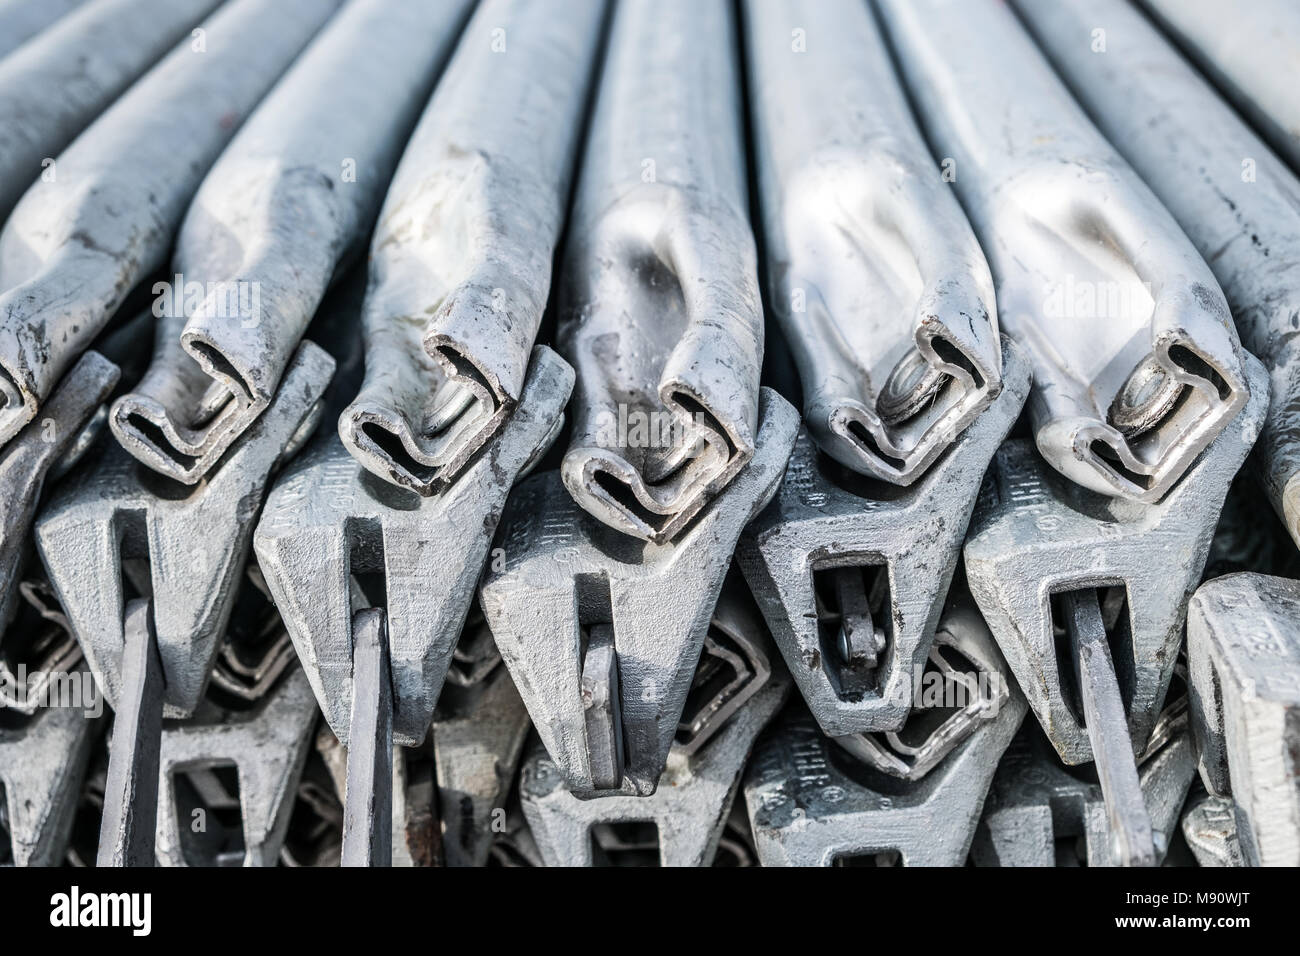 scaffolding steel poles closeup  - building construction industry concept - - Stock Image